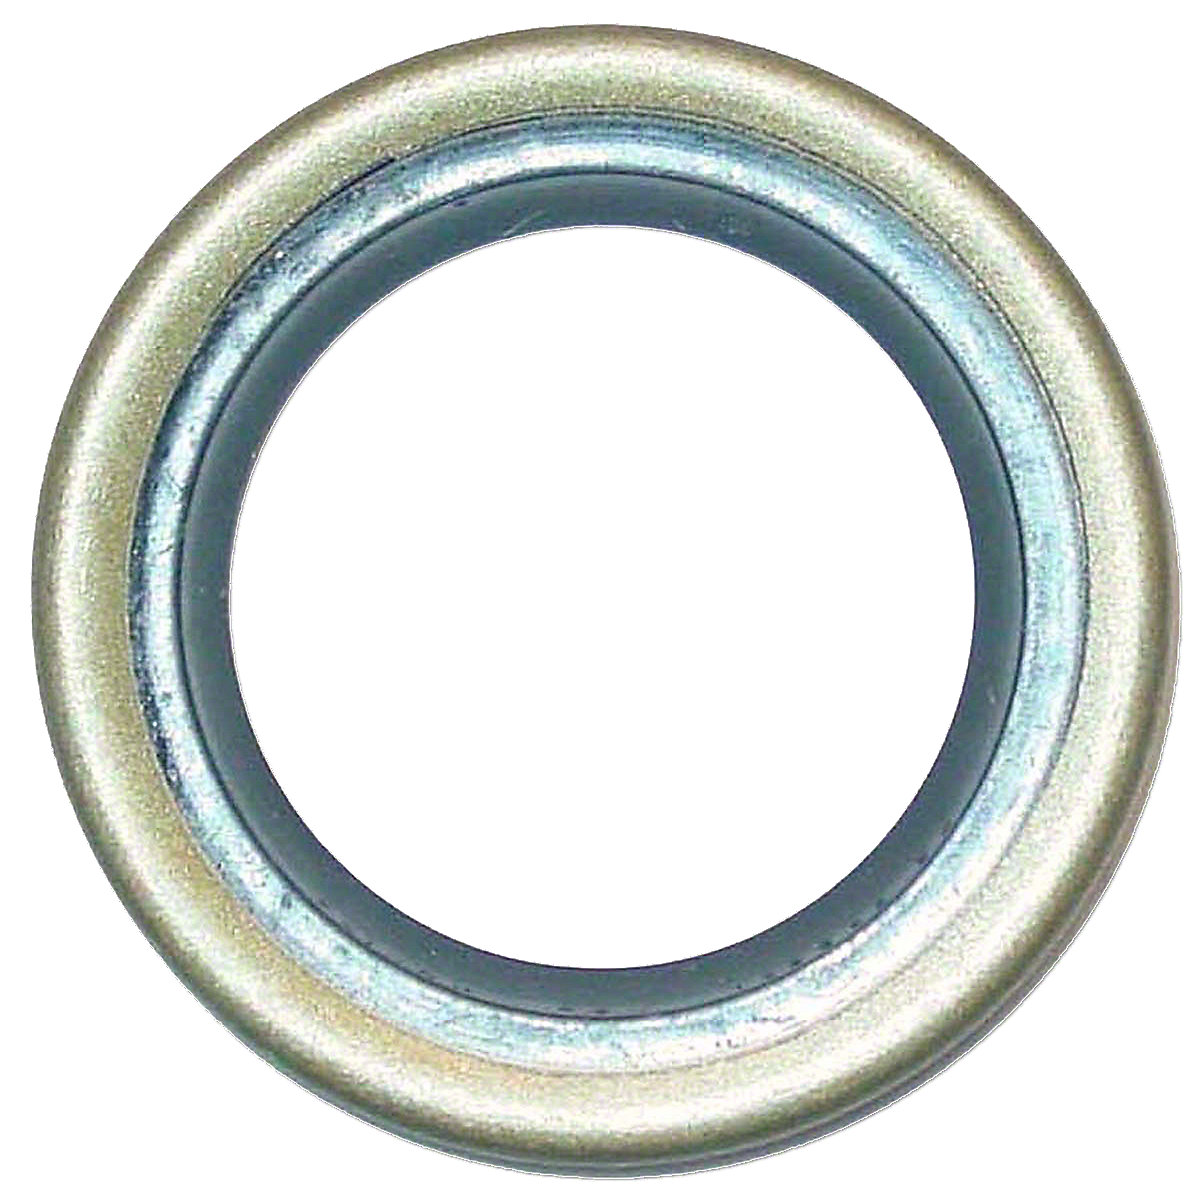 PTO Shaft Oil Seal For Oliver: Super 44, 440, 660, 770, 880, 1550, 1555, 1600, 1650, 1655. Replaces Oliver PN#: 101691a, 112481, 114407, 160485as, 452055a, at353.